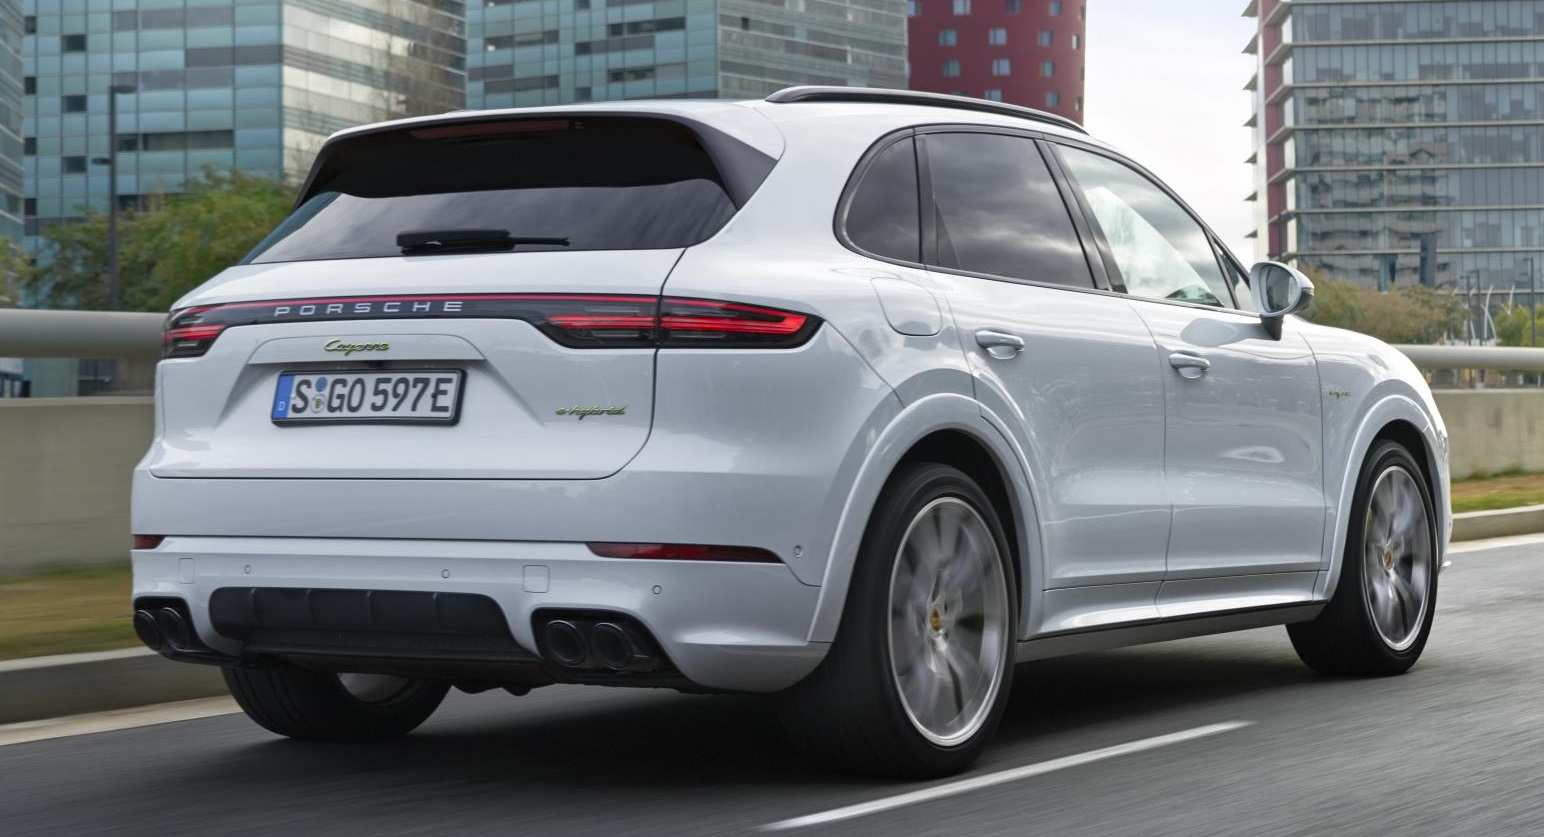 22 Gallery of 2019 Porsche Cayenne Specs Interior with 2019 Porsche Cayenne Specs